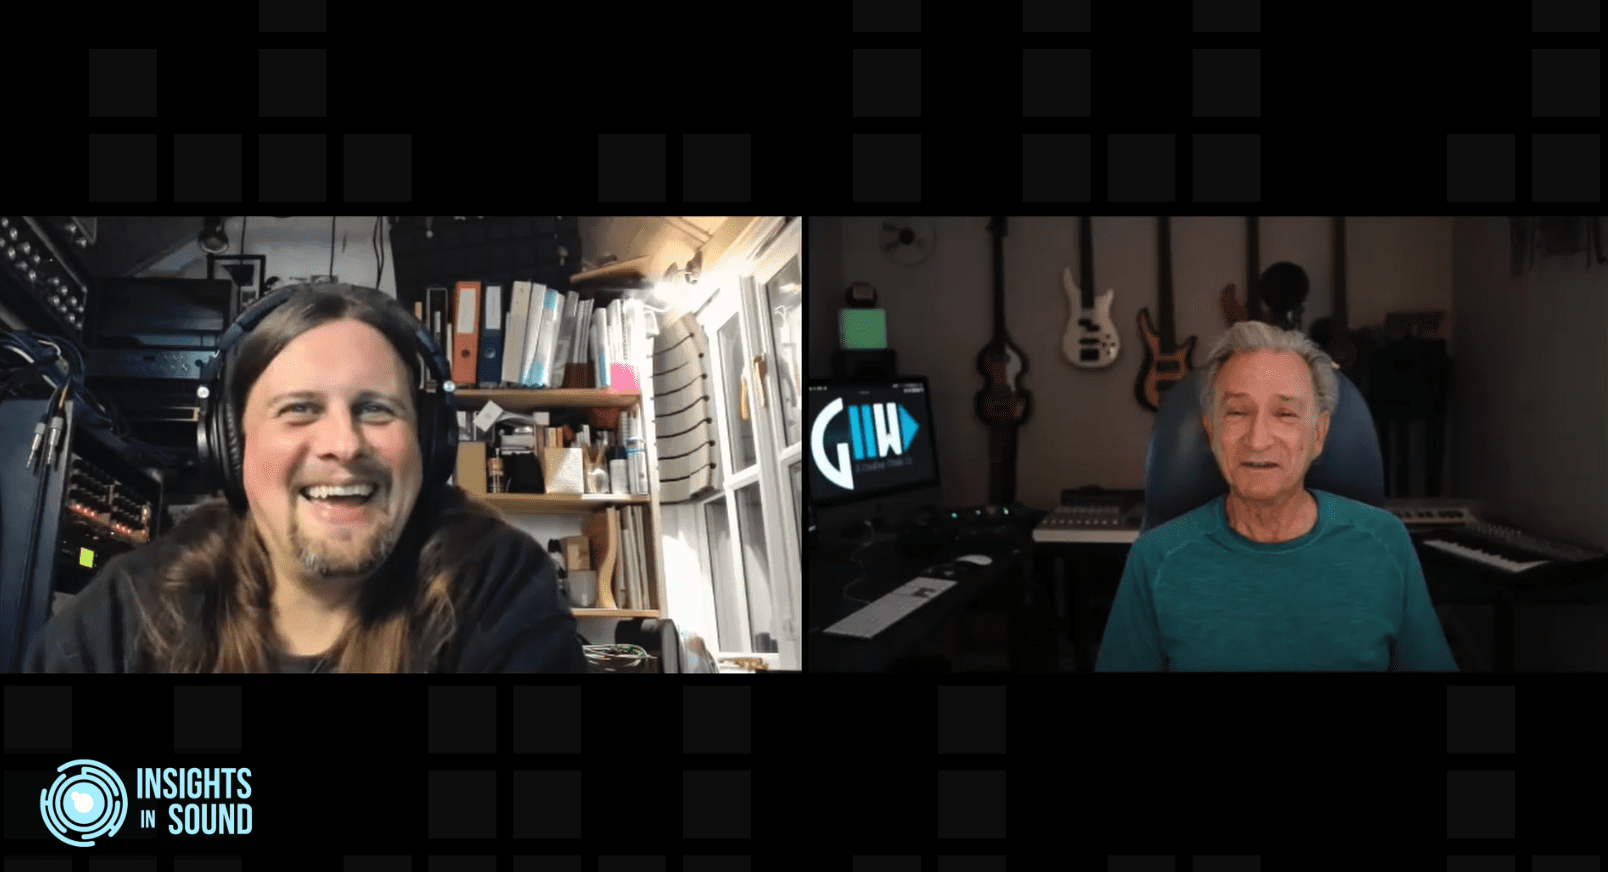 Insights in Sound –  Wes Maebe, Engineer/Producer (Episode 10)